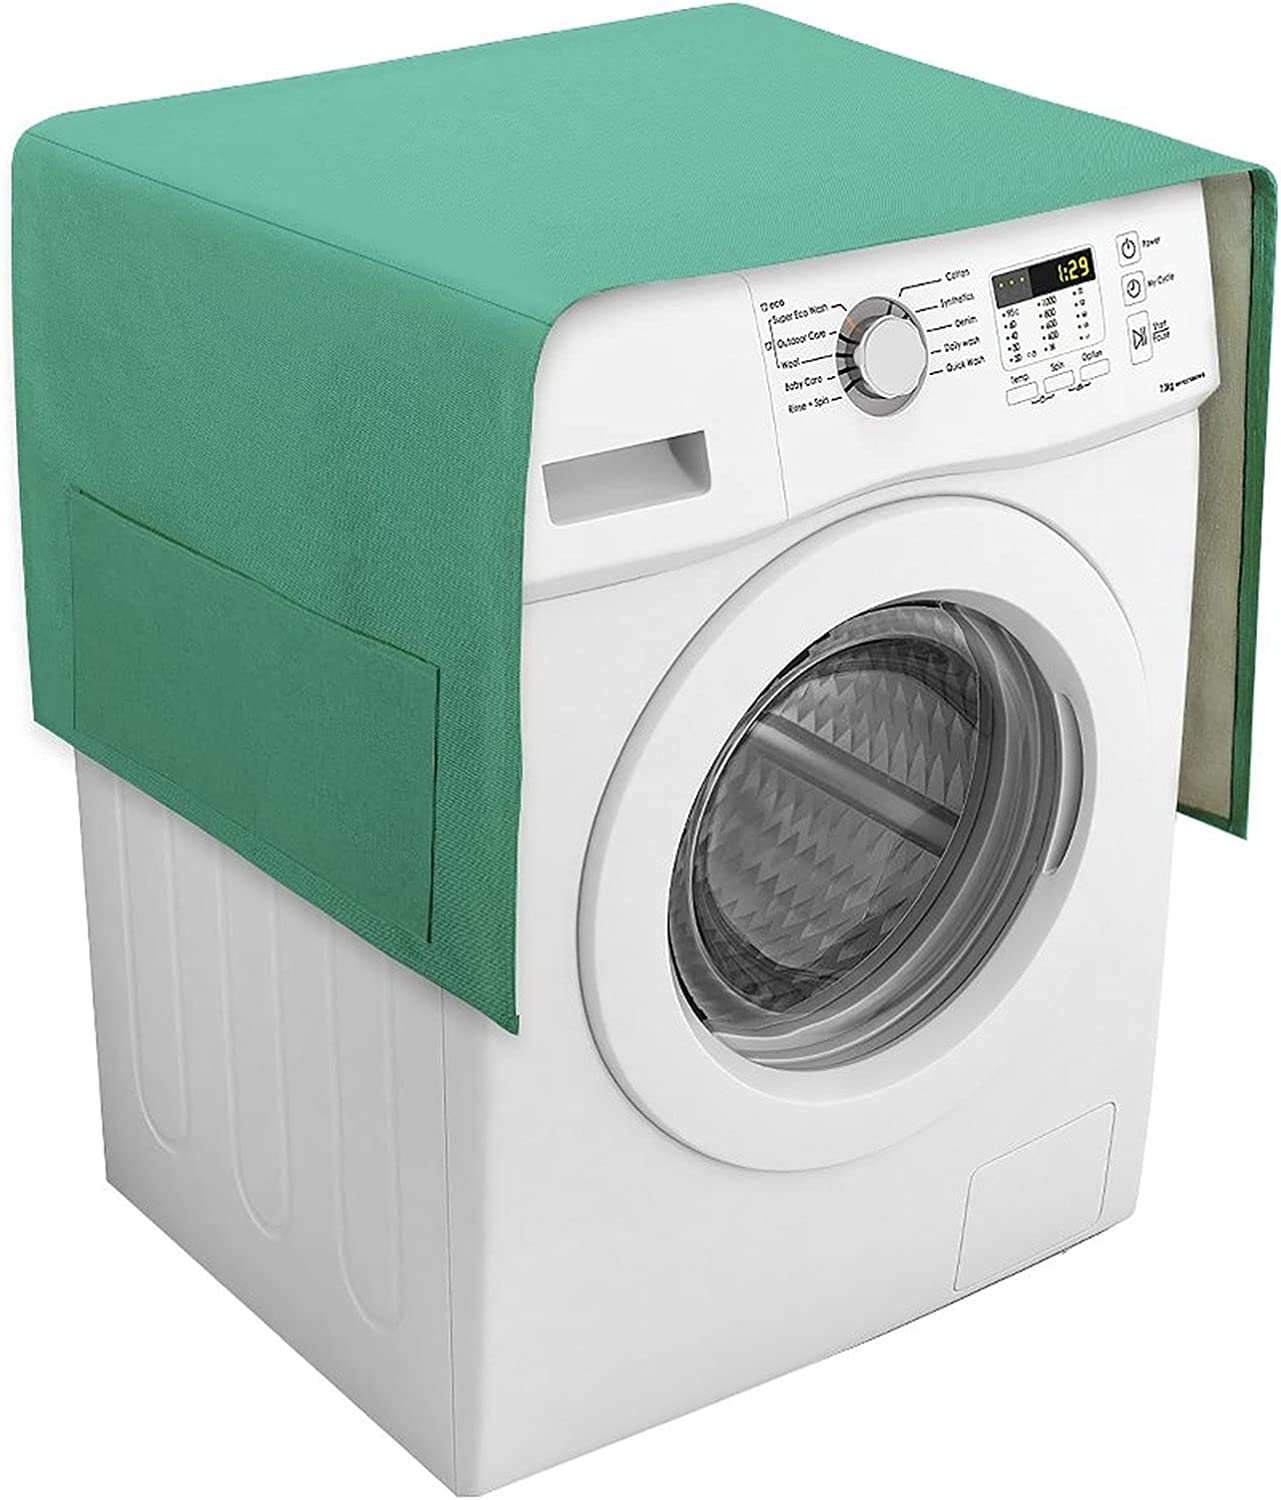 Multi-Purpose Washing Machine Covers Protector Appliance Washer Selling rankings Popularity